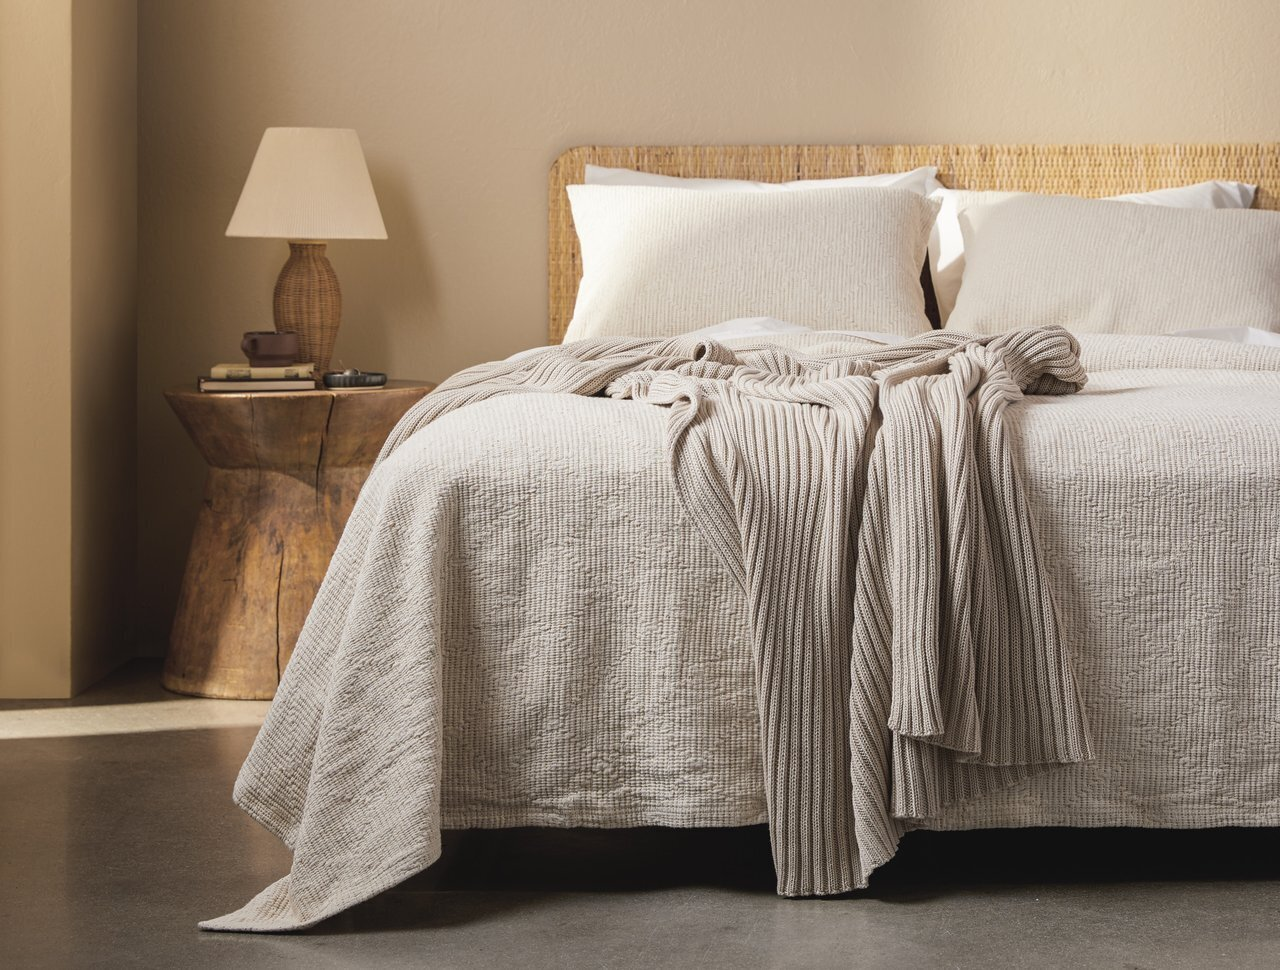 Bedroom, Night Stands, Table Lighting, and Bed  Photo 1 of 1 in 21 Cuddly Throws We Love for Less Than $100